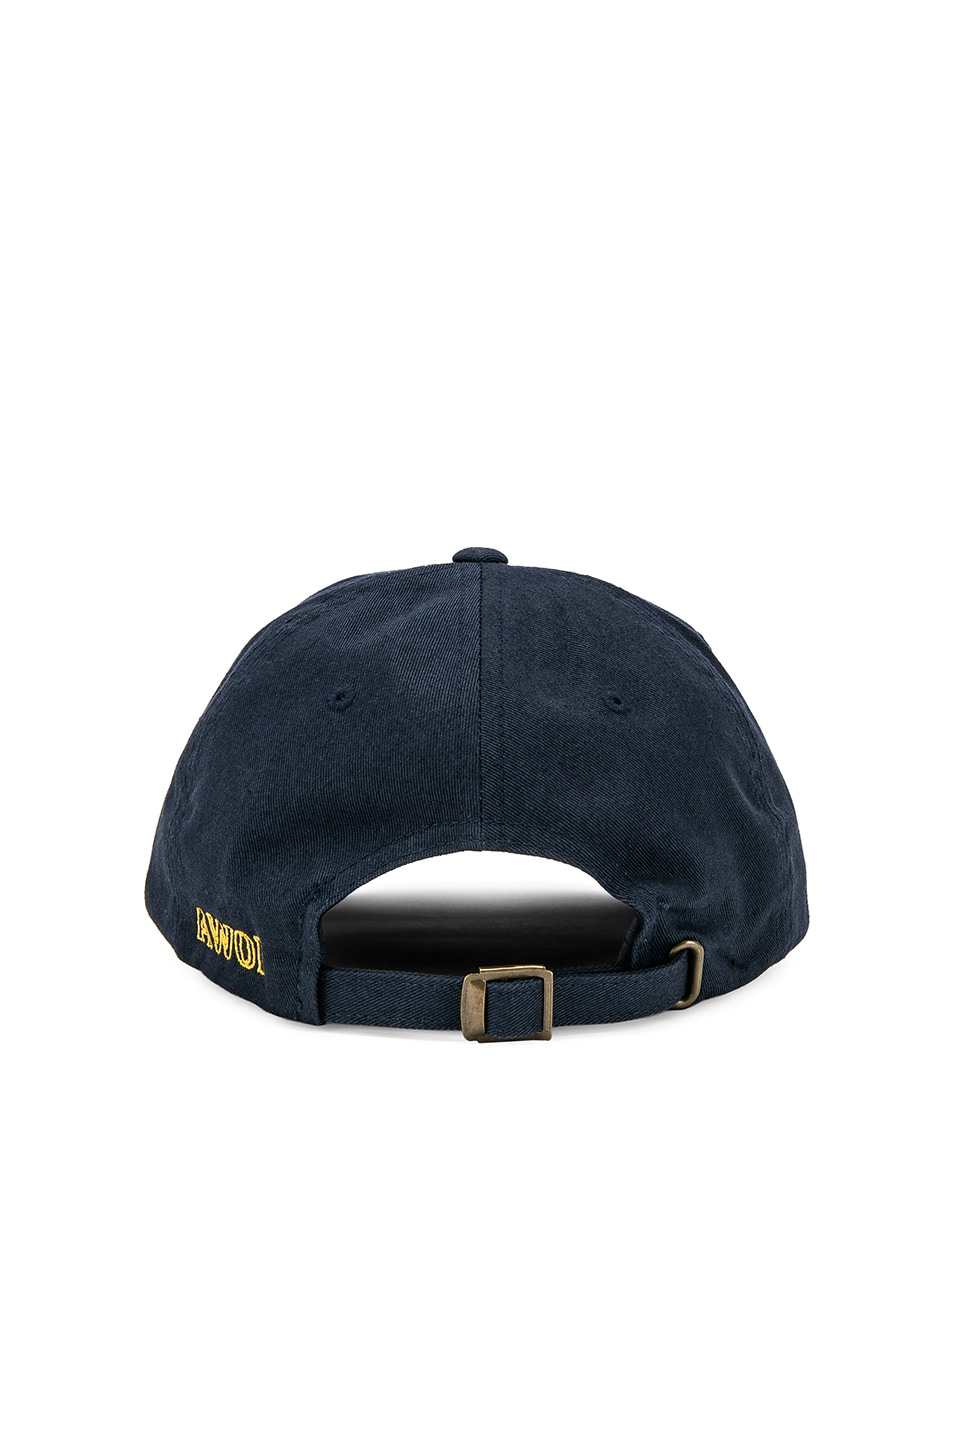 Image 4 of Reese Cooper Awoi Eagle Cap in Navy & Yellow